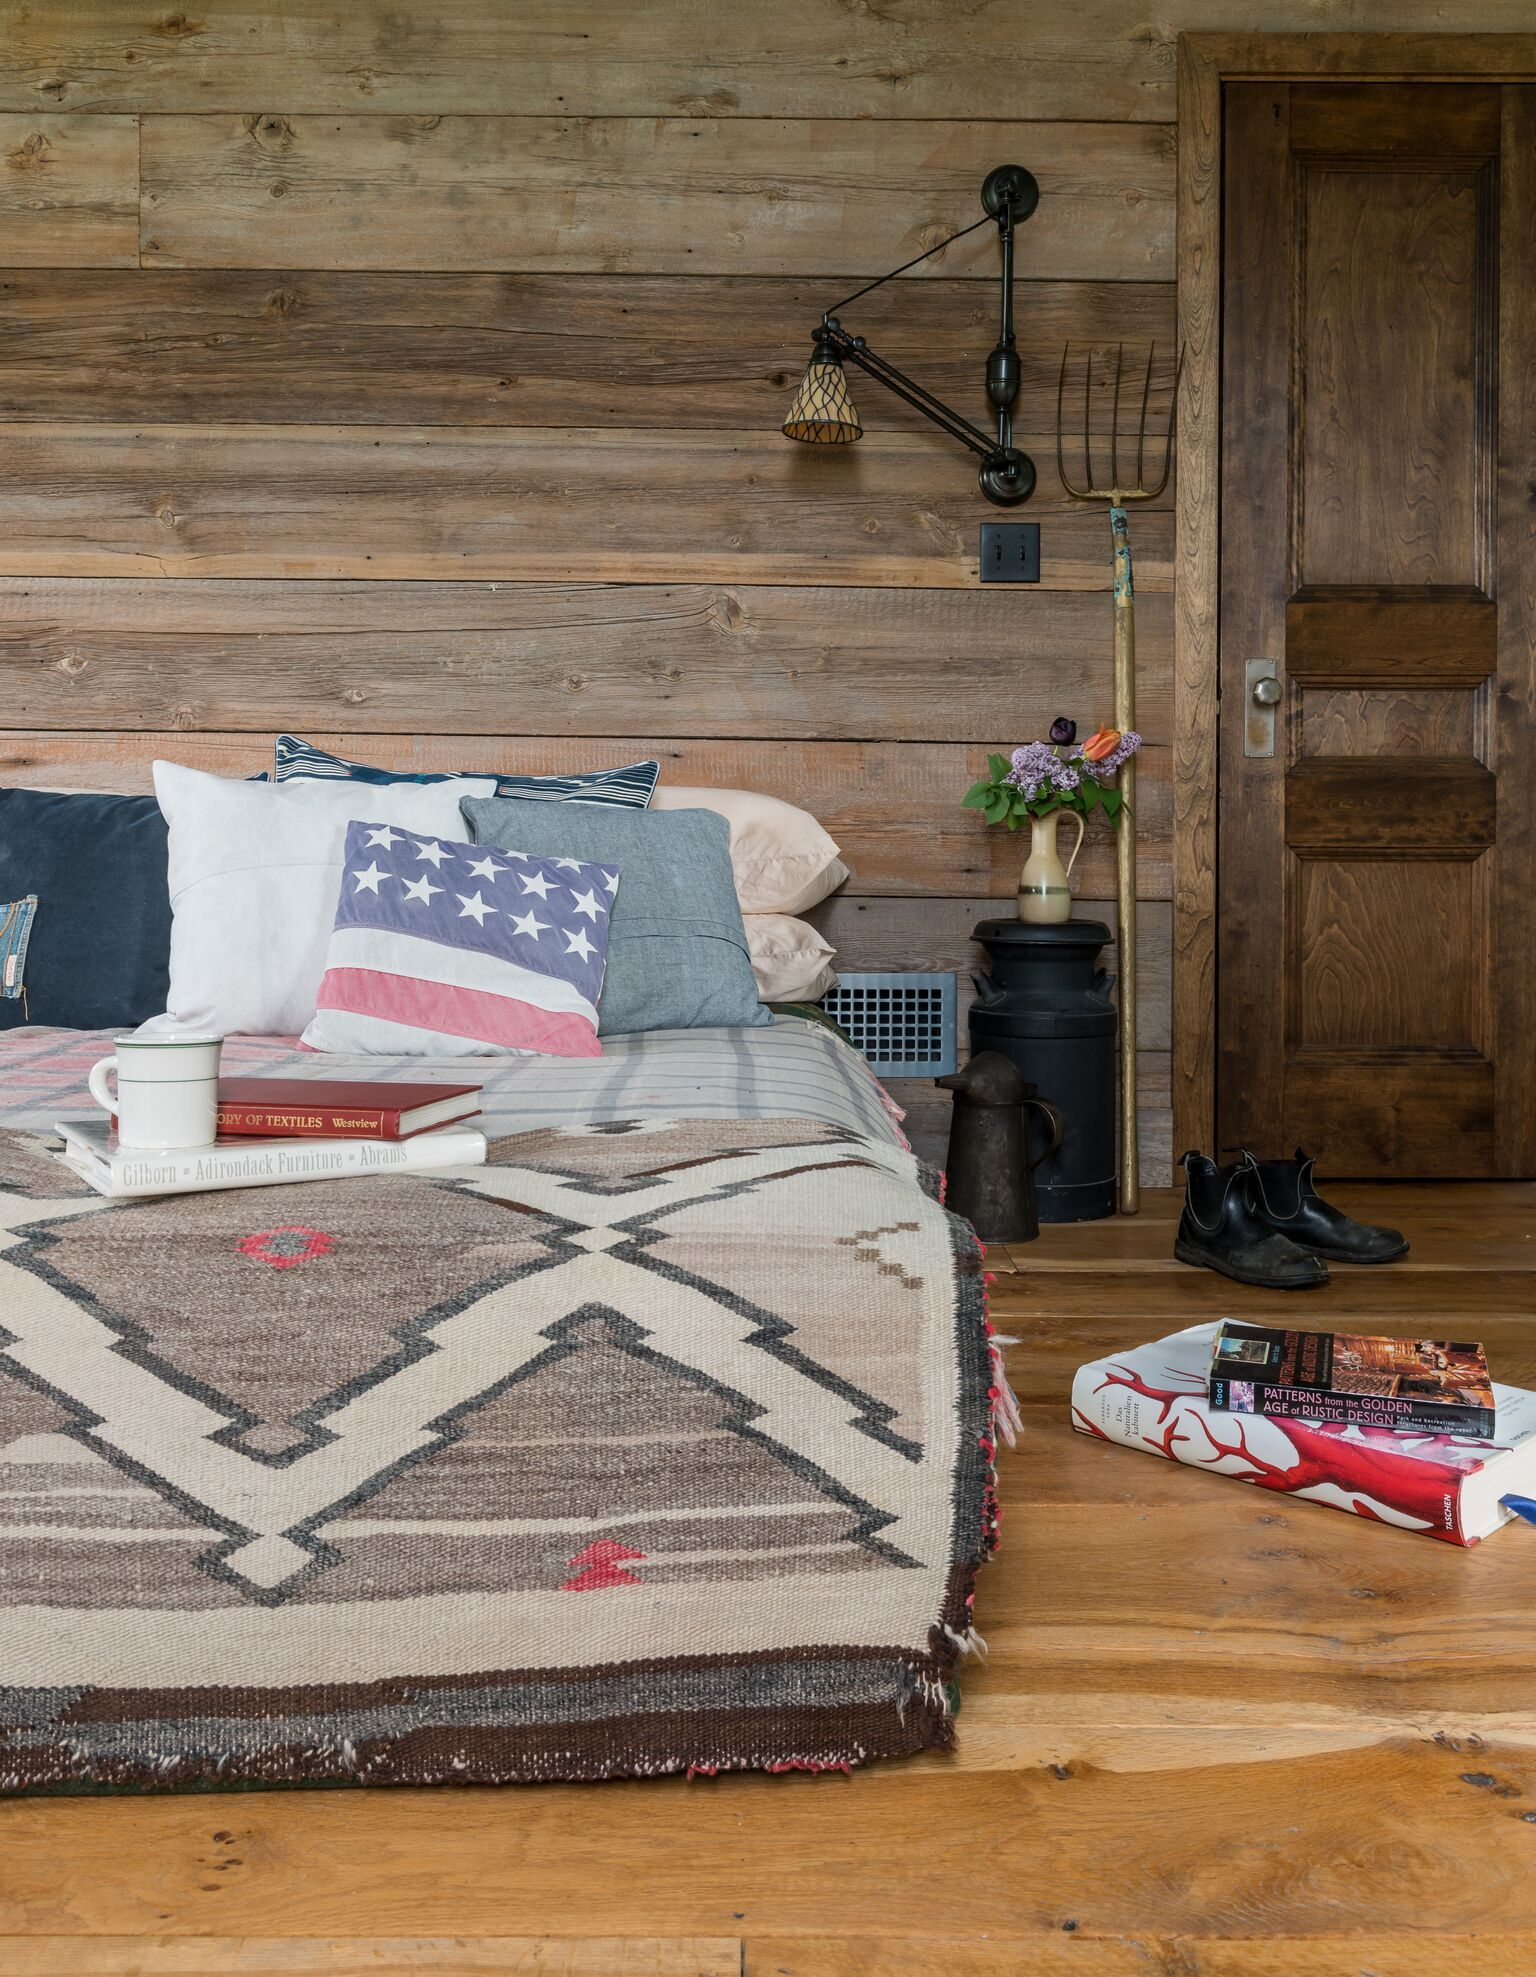 Reclaimed Barnwood Interior Brings Warmth And Texture To This Western Bedroom Lighting Designed For Aesthetics Function